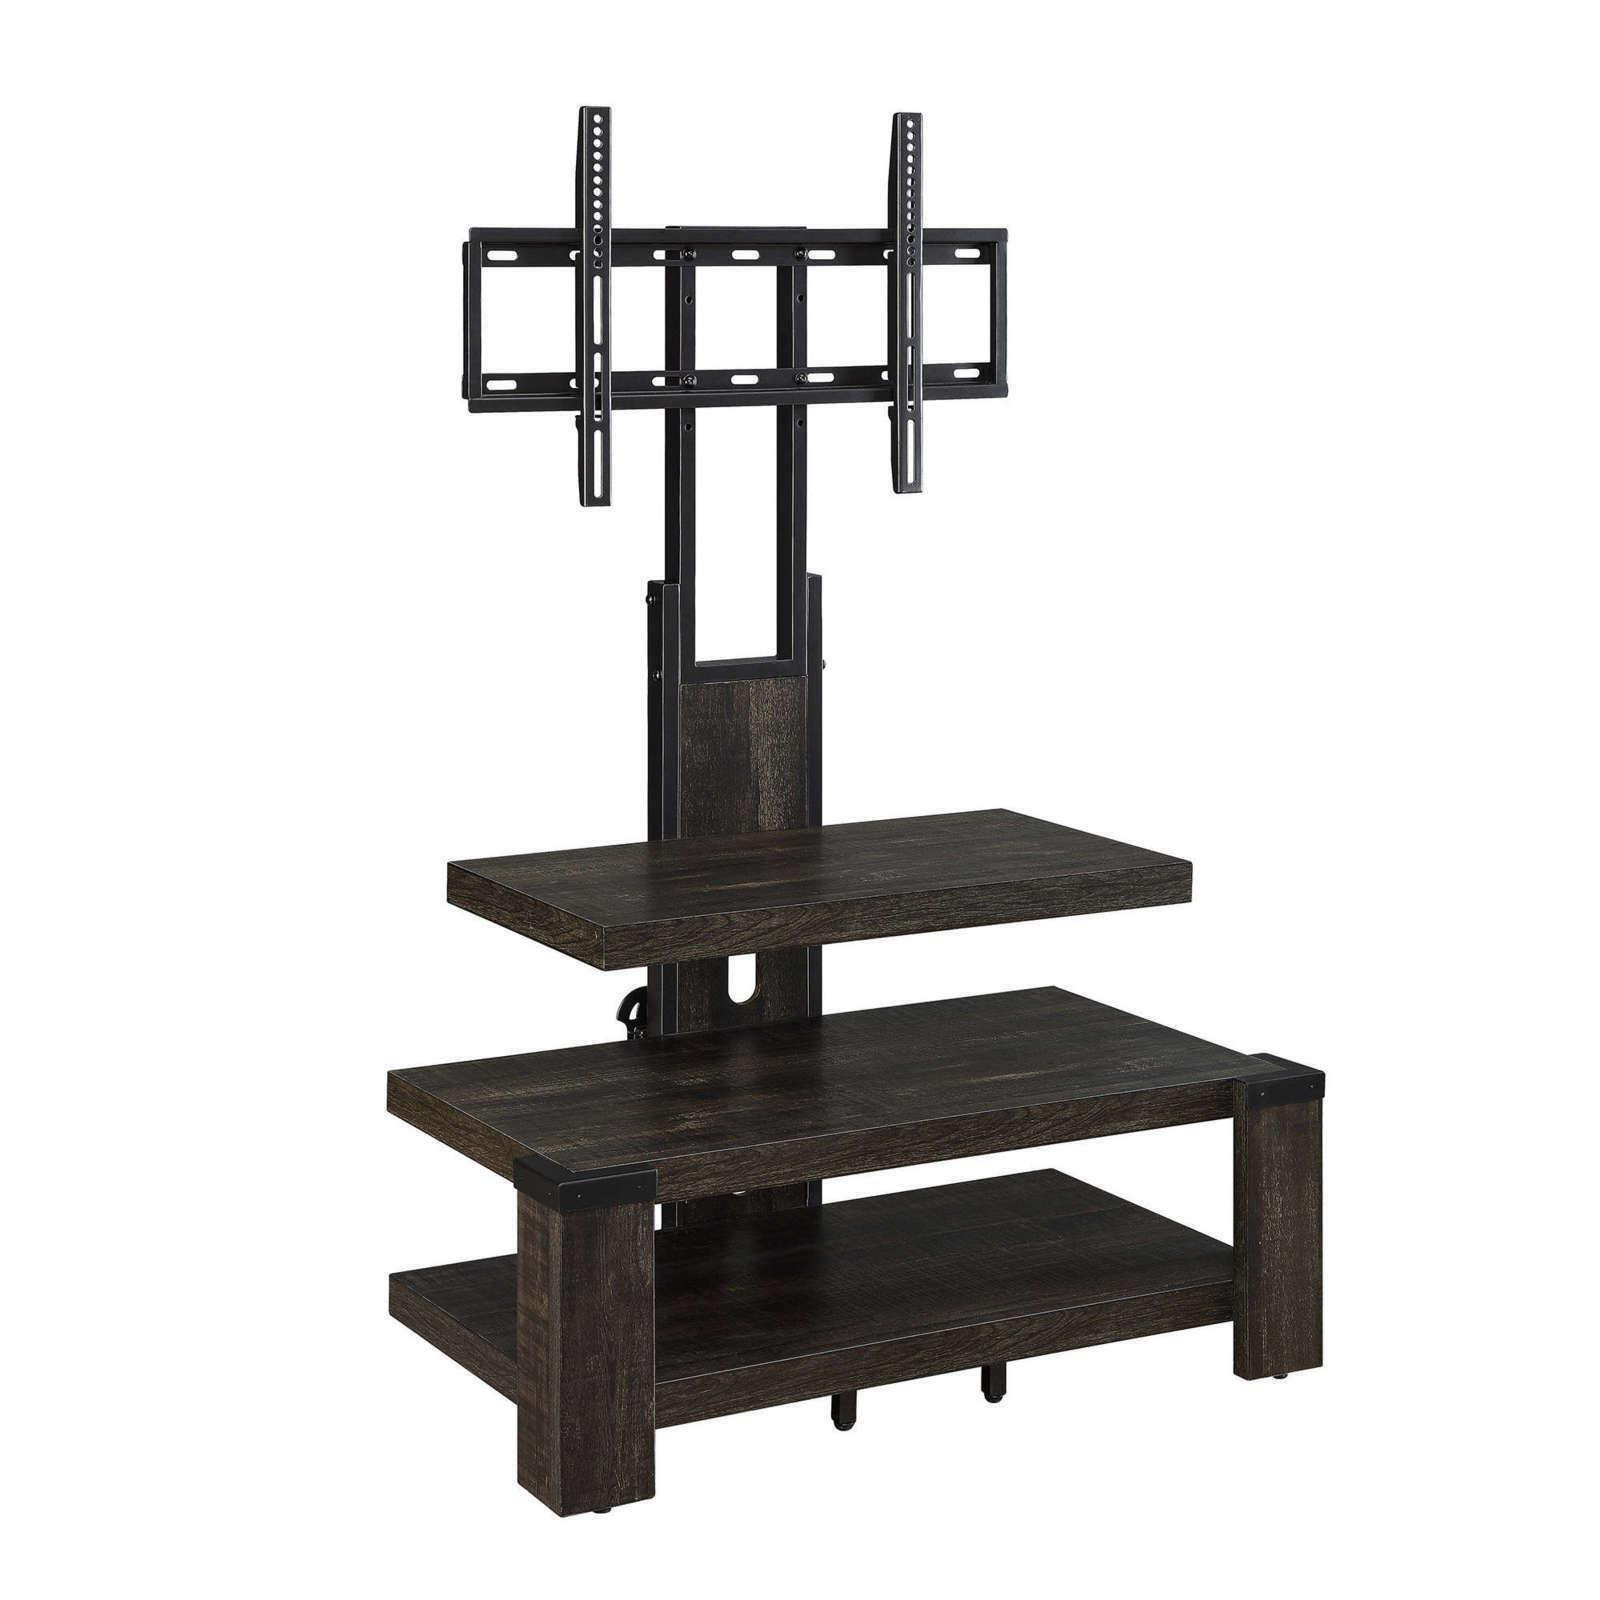 """Current Whalen Furniture Black Tv Stands For 65"""" Flat Panel Tvs With Tempered Glass Shelves In Tv Stand 65 Inch Flat Screen Entertainment Medi (View 6 of 10)"""